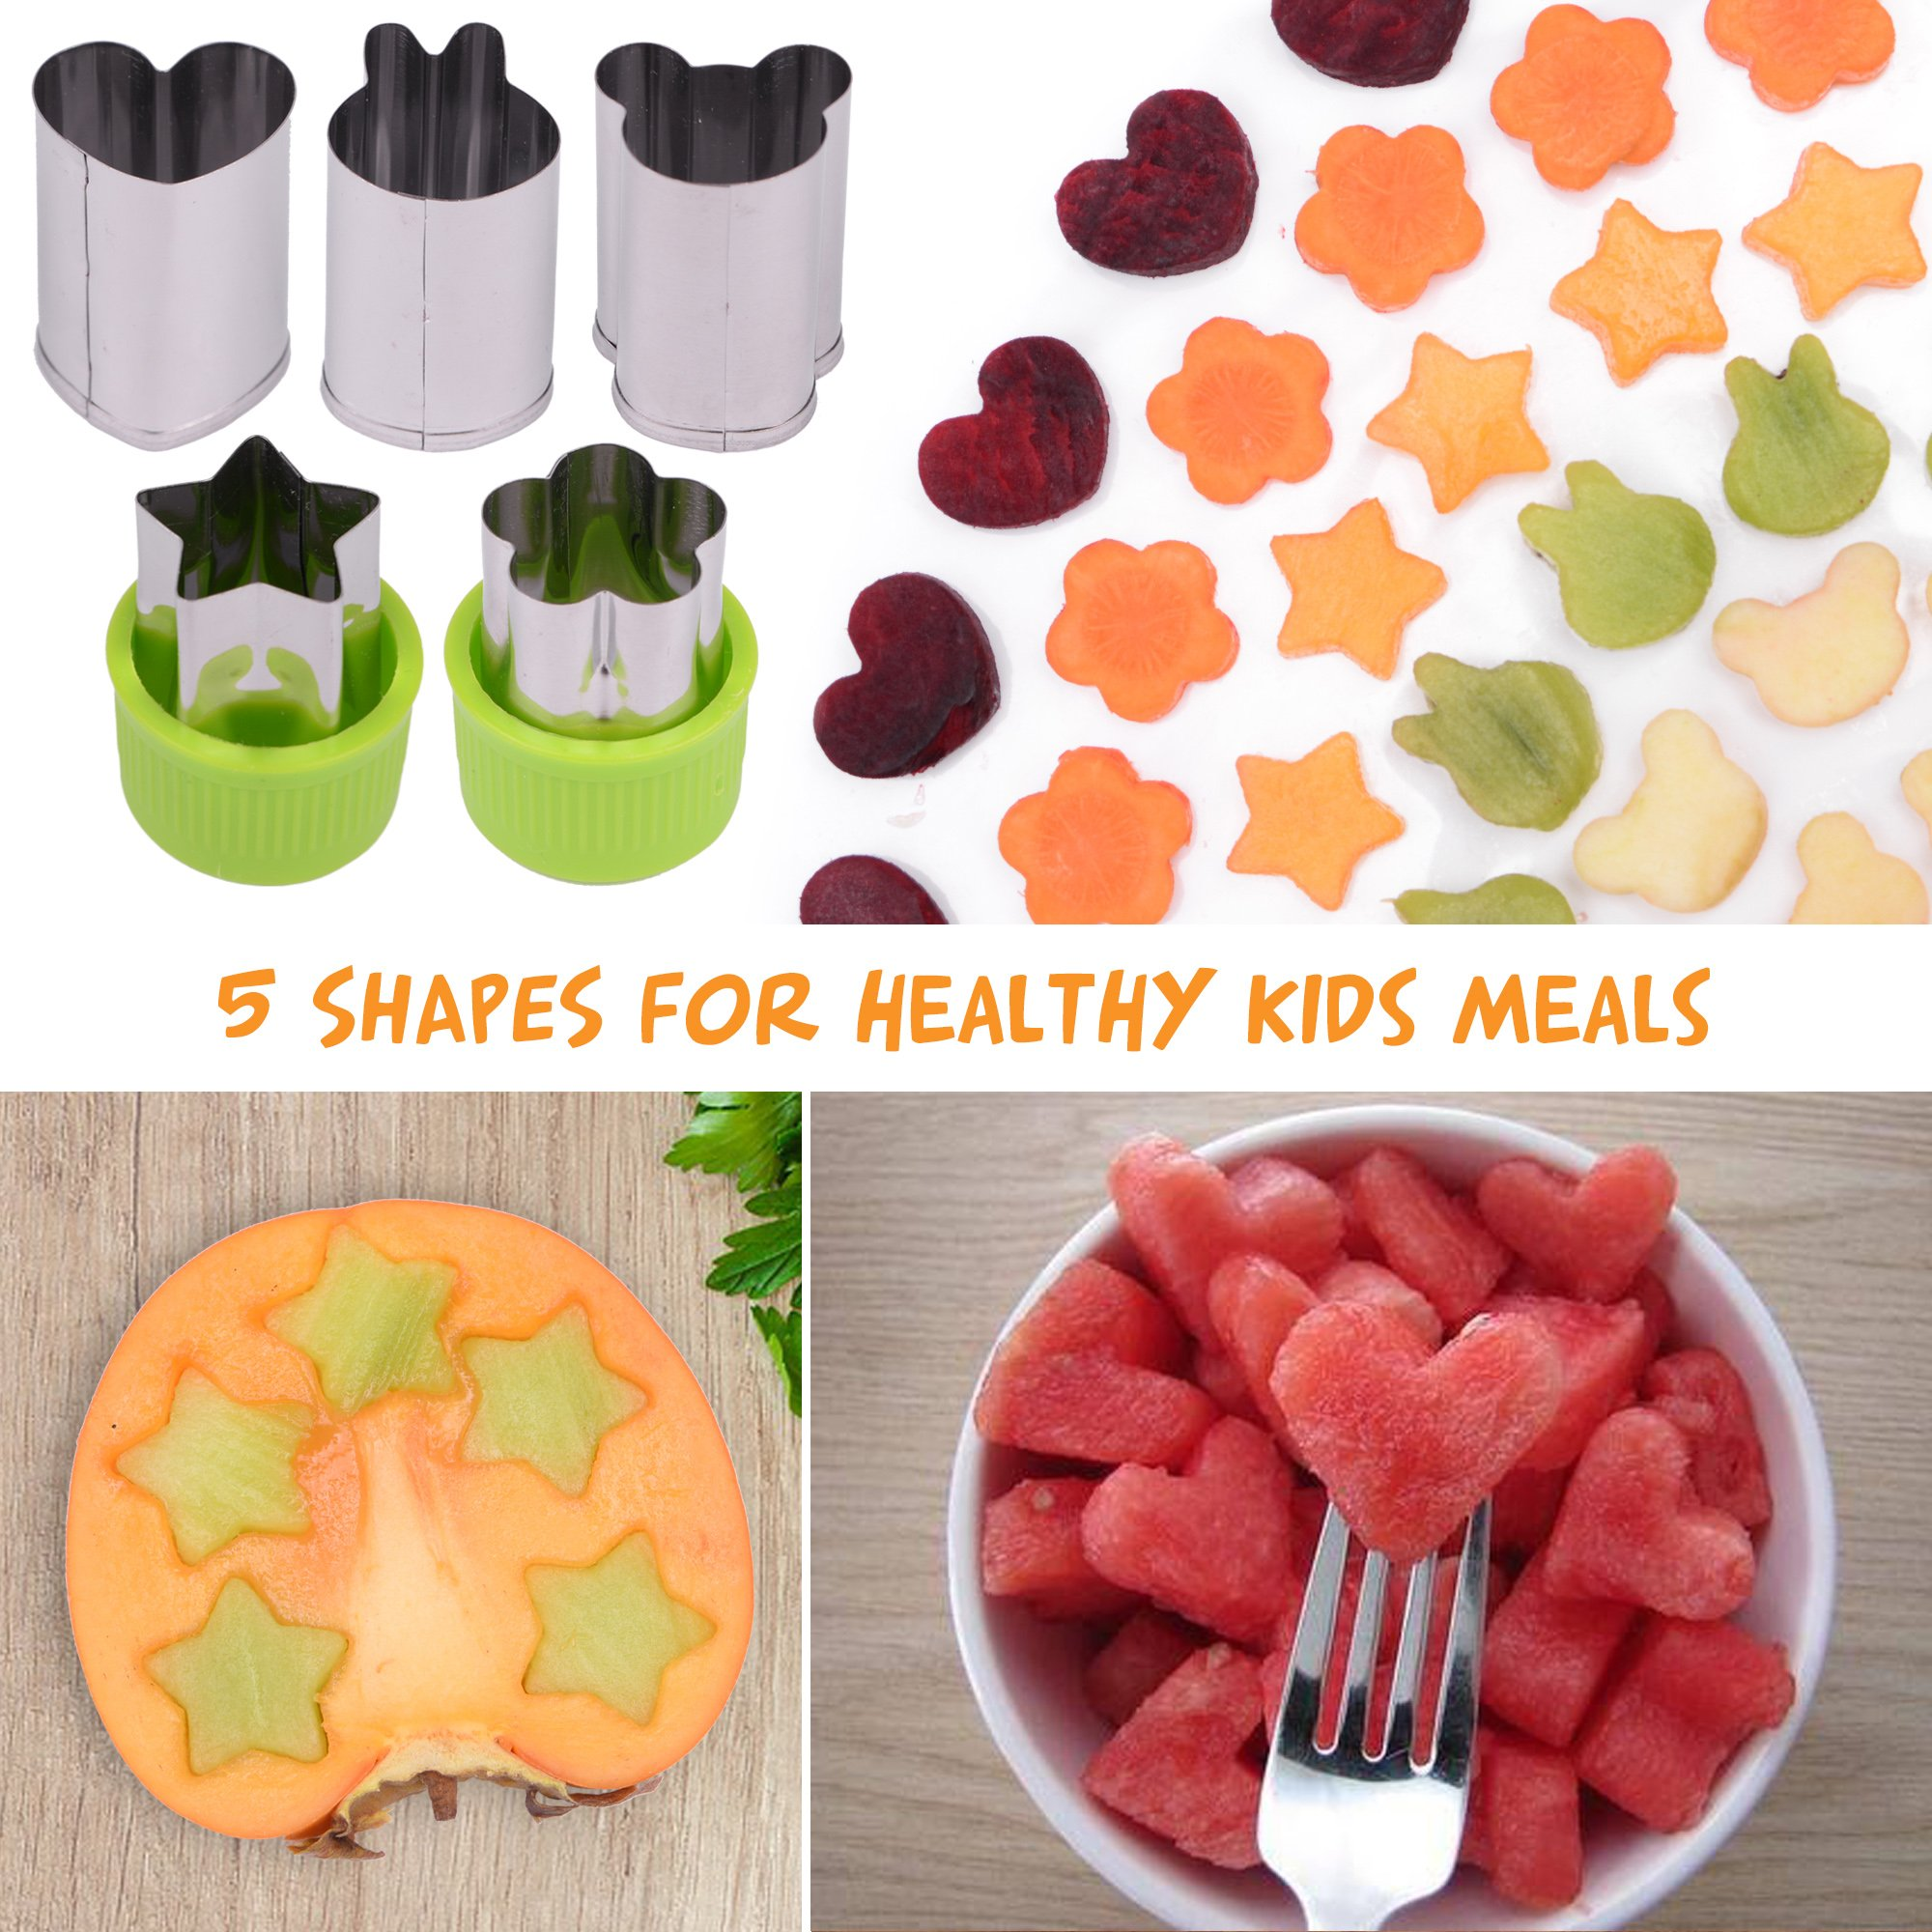 [20-Piece Set] Sandwich Cutters for Kids - 5 Sandwich Cutter Shapes, 5 Vegetable Cutters and FREE 10 Bento Decorations by GO FRESH (Image #4)